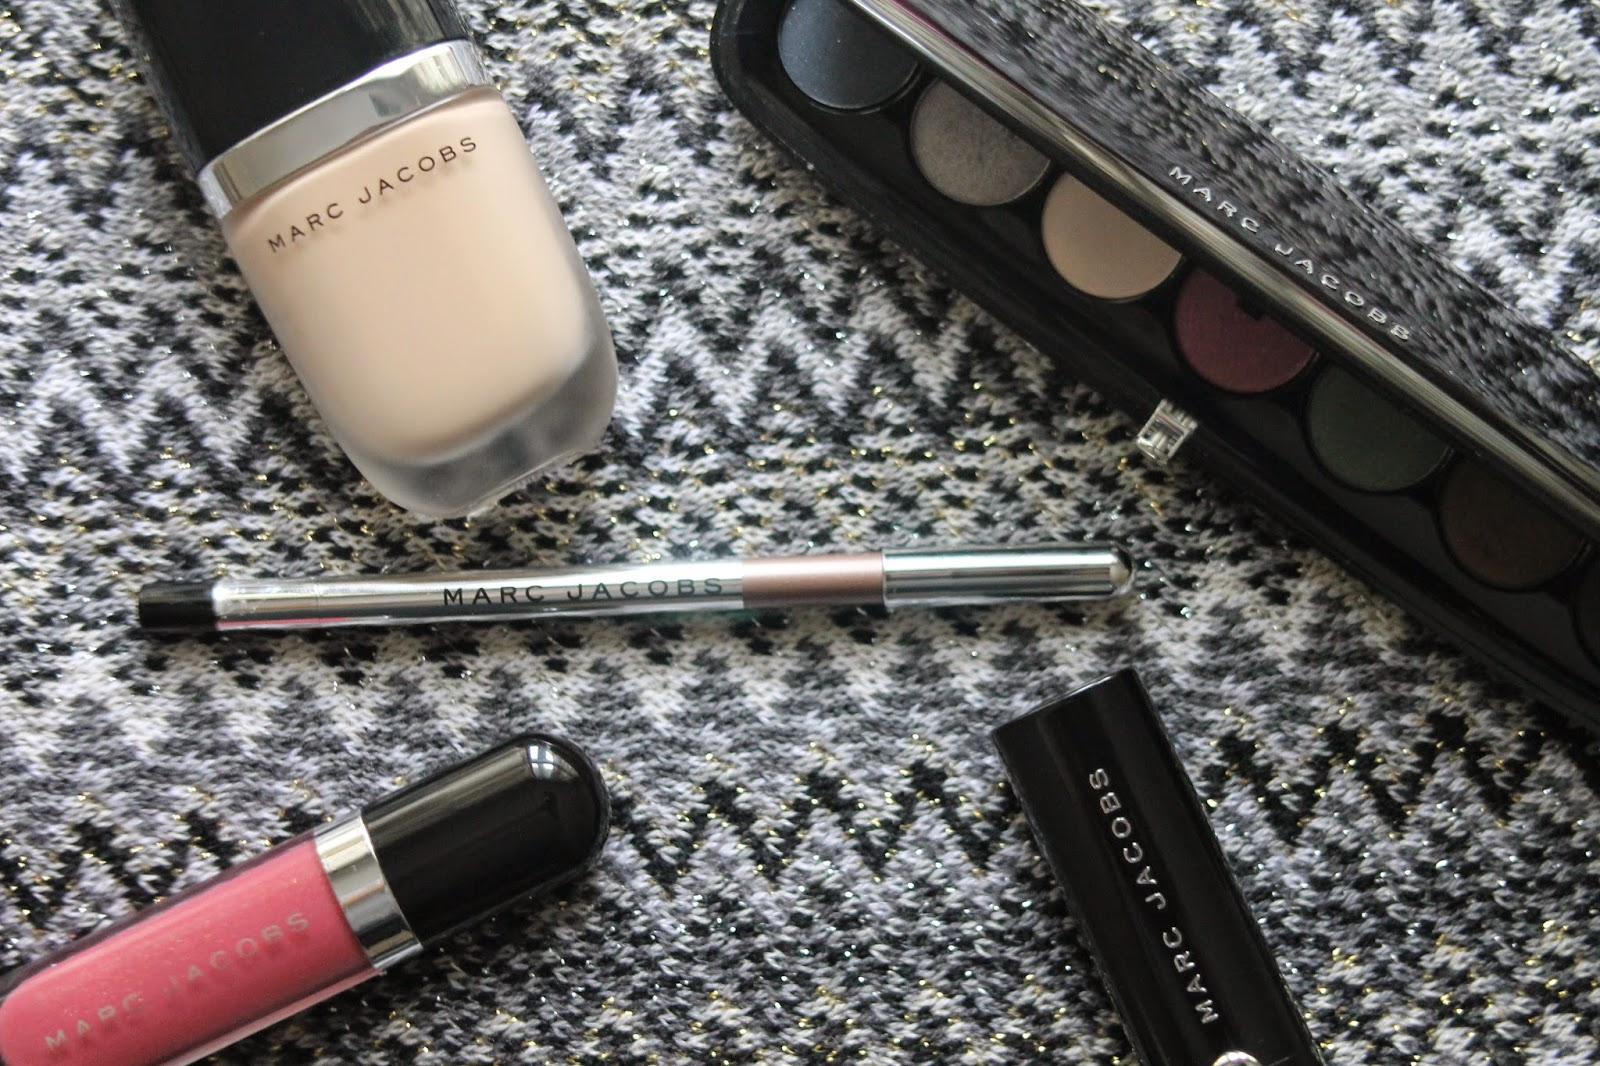 MARC JACOBS MAKEUP: WHAT TO BUY